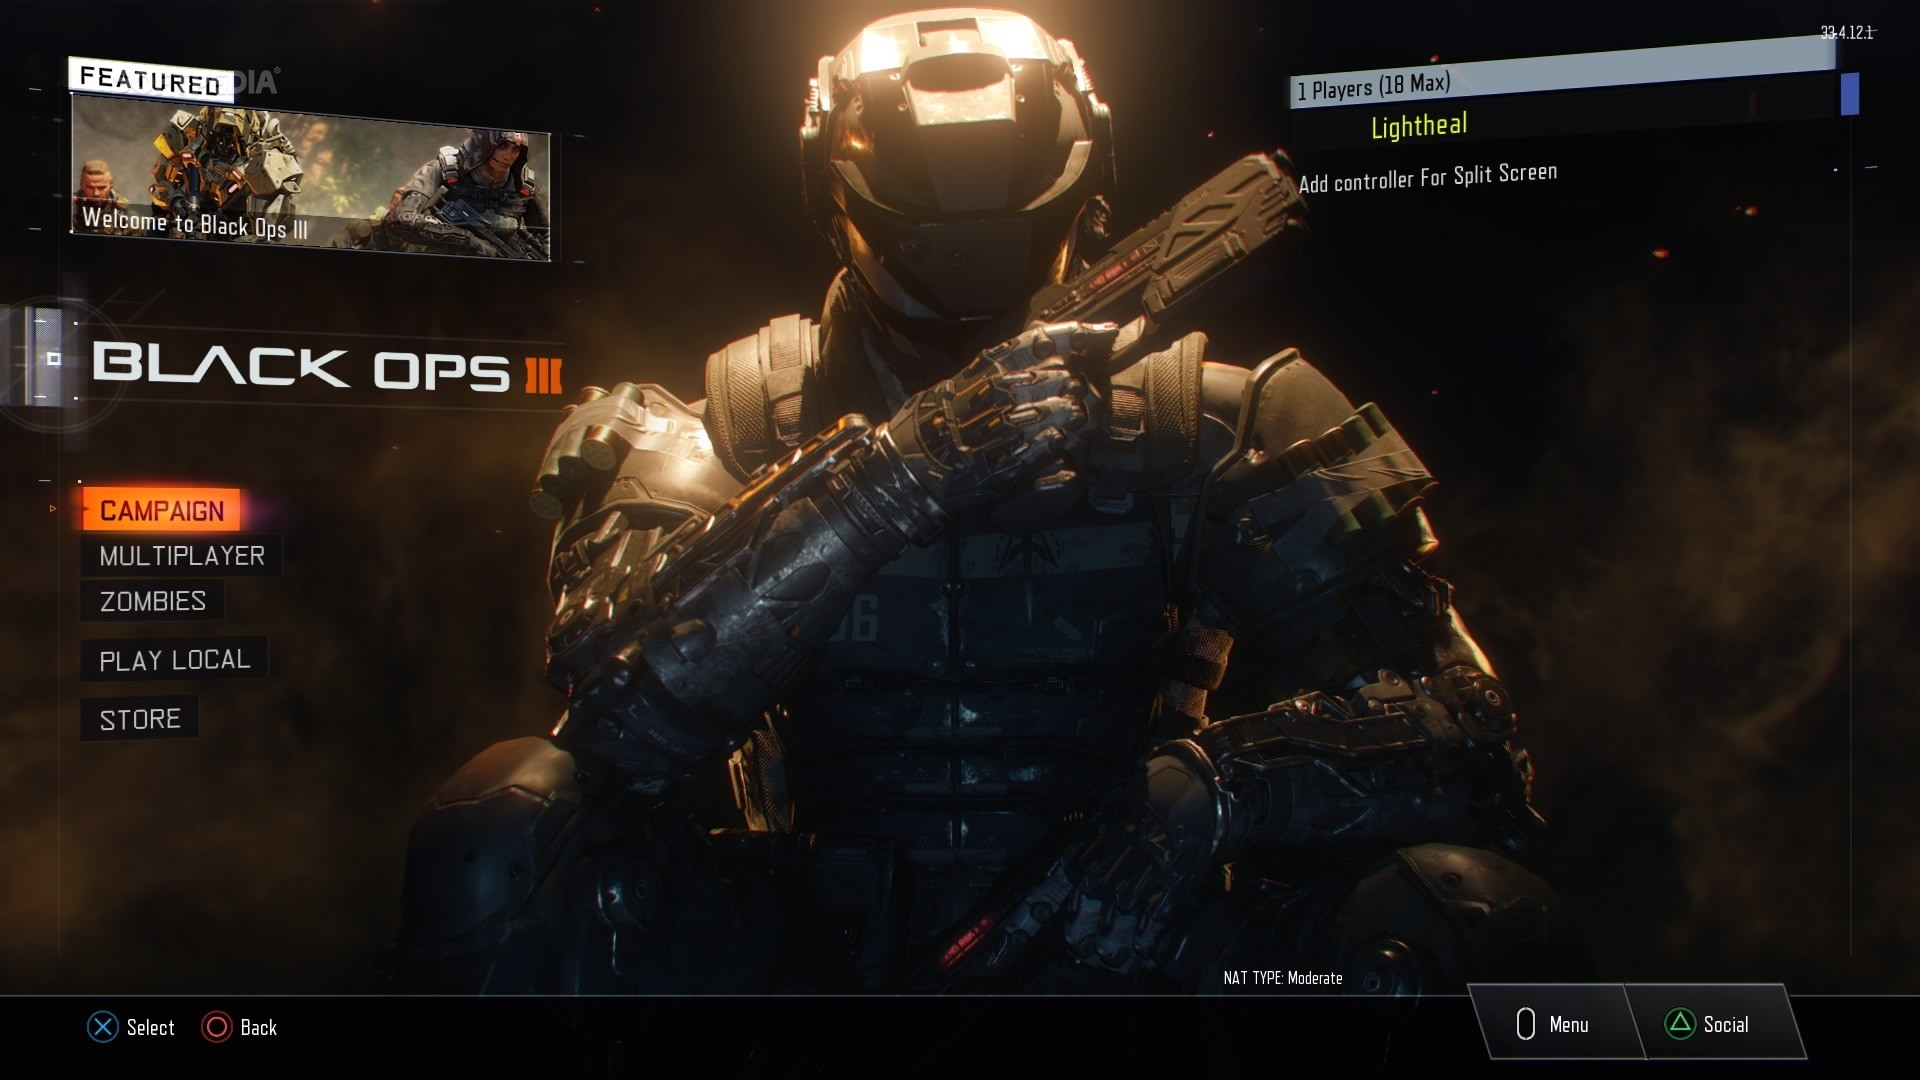 Call Of Duty Black Ops Iii Review Ps4 Fun Now Forgettable Soon